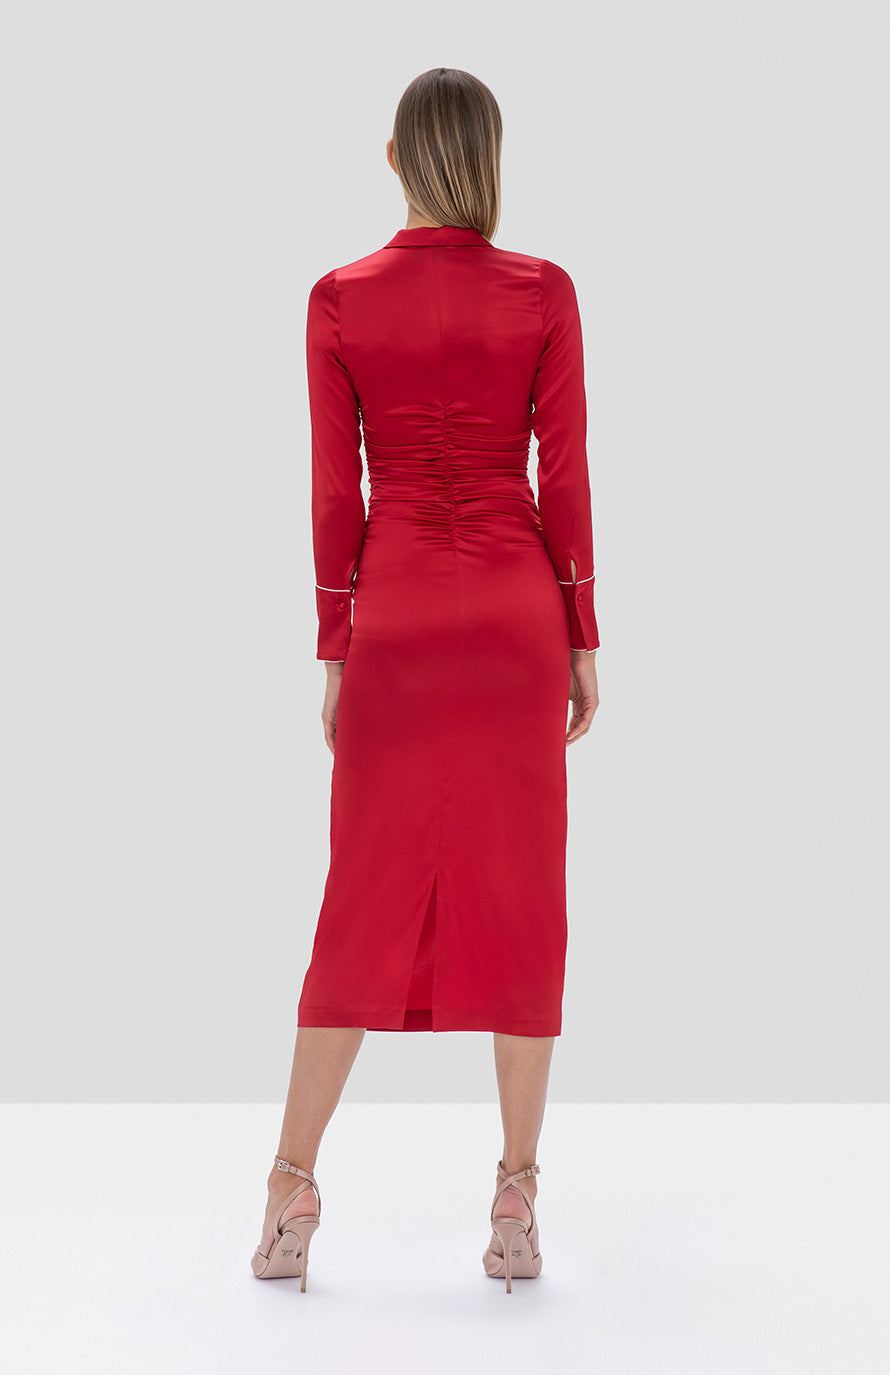 Candace Dress Red - Rear View